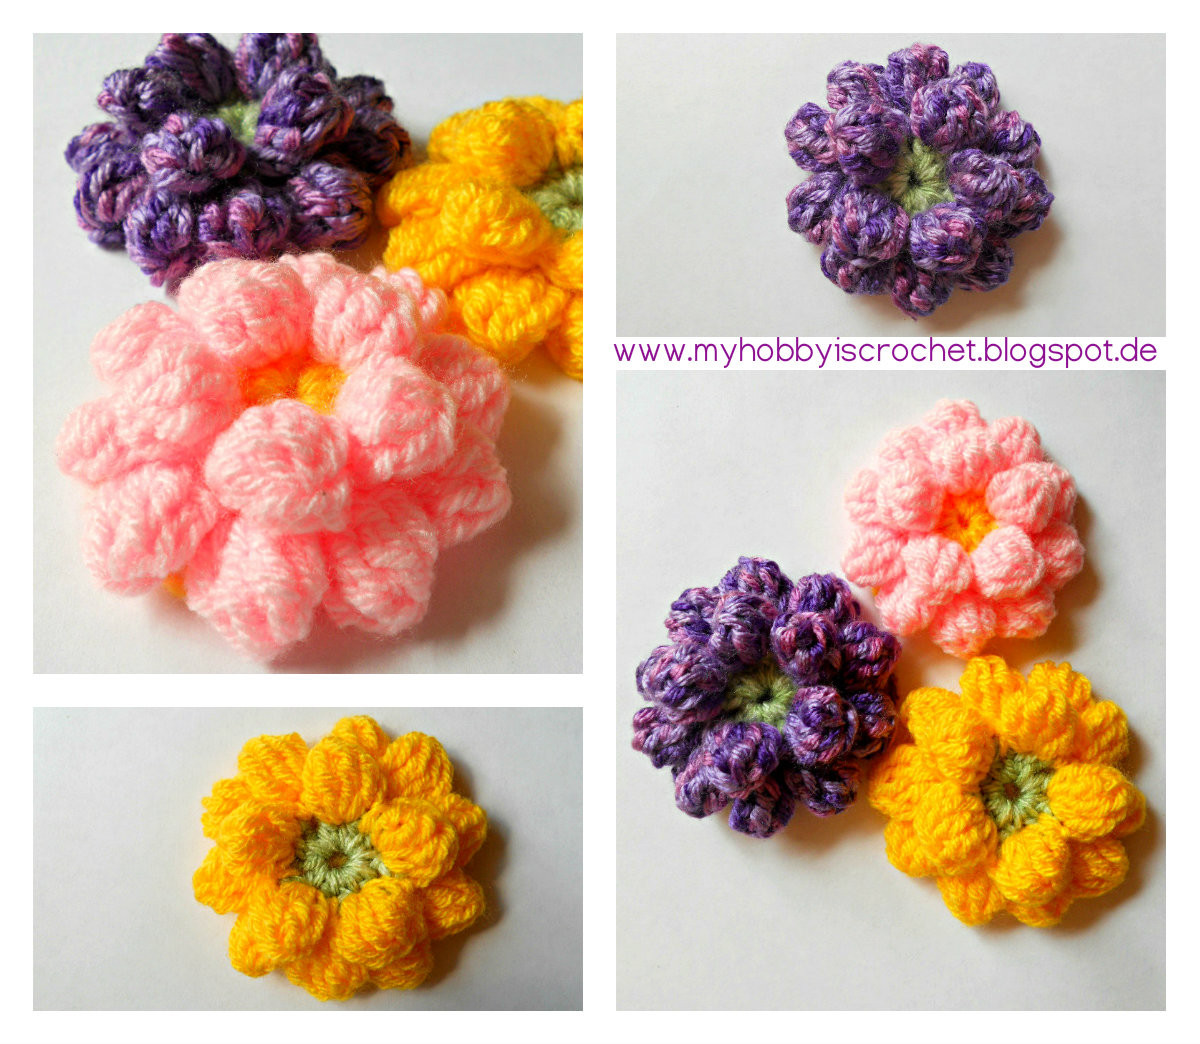 Free Crochet Flower Patterns Lovely My Hobby is Crochet Crochet Dahlia Flower Free Pattern Of Amazing 42 Images Free Crochet Flower Patterns